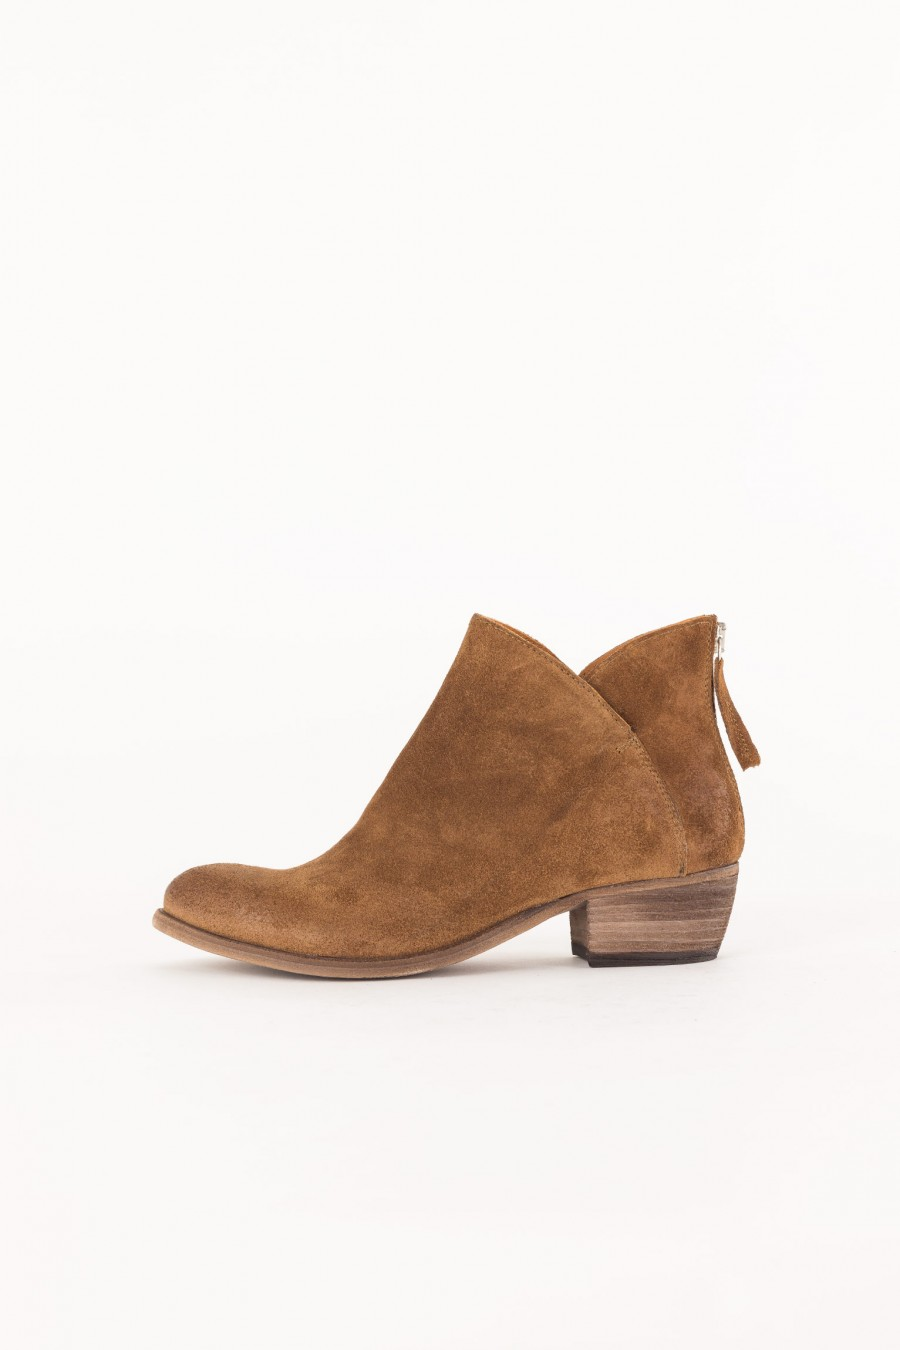 brown suede ankle boots with low heel